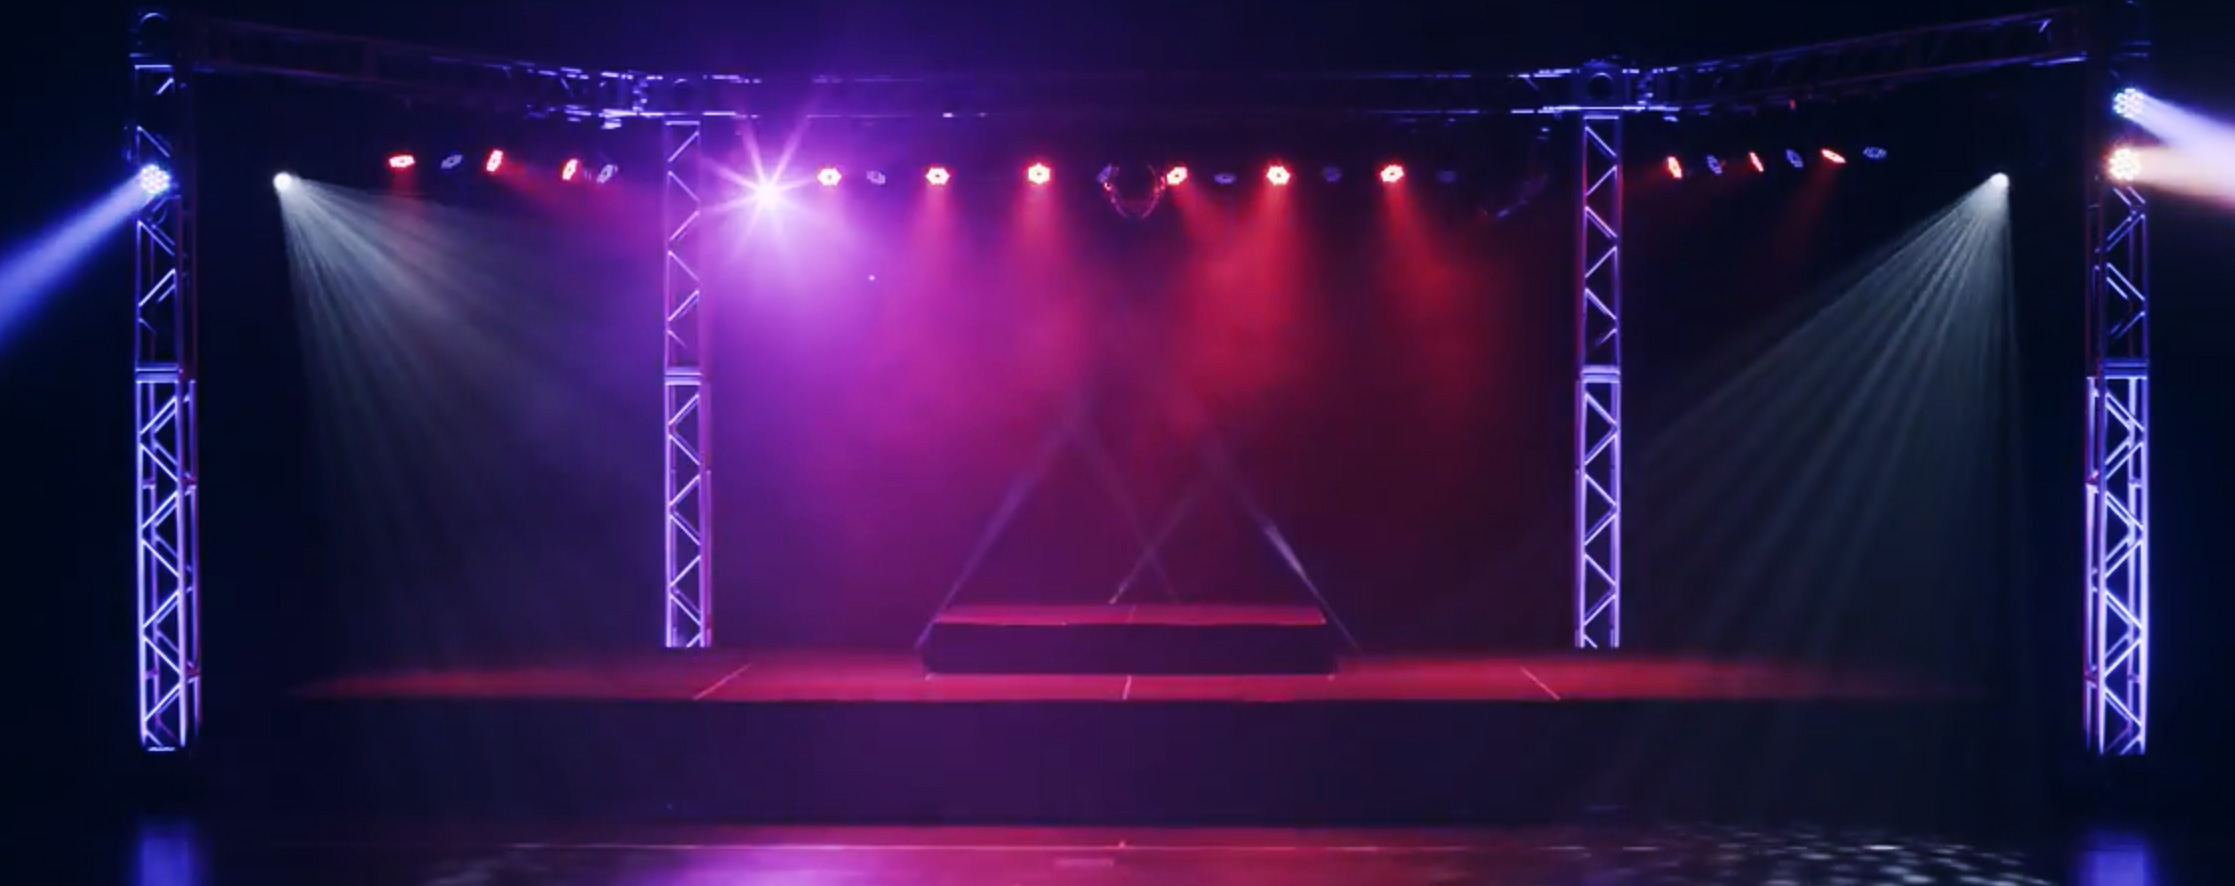 Four column trussing with par and moving head lighting on sound stage.